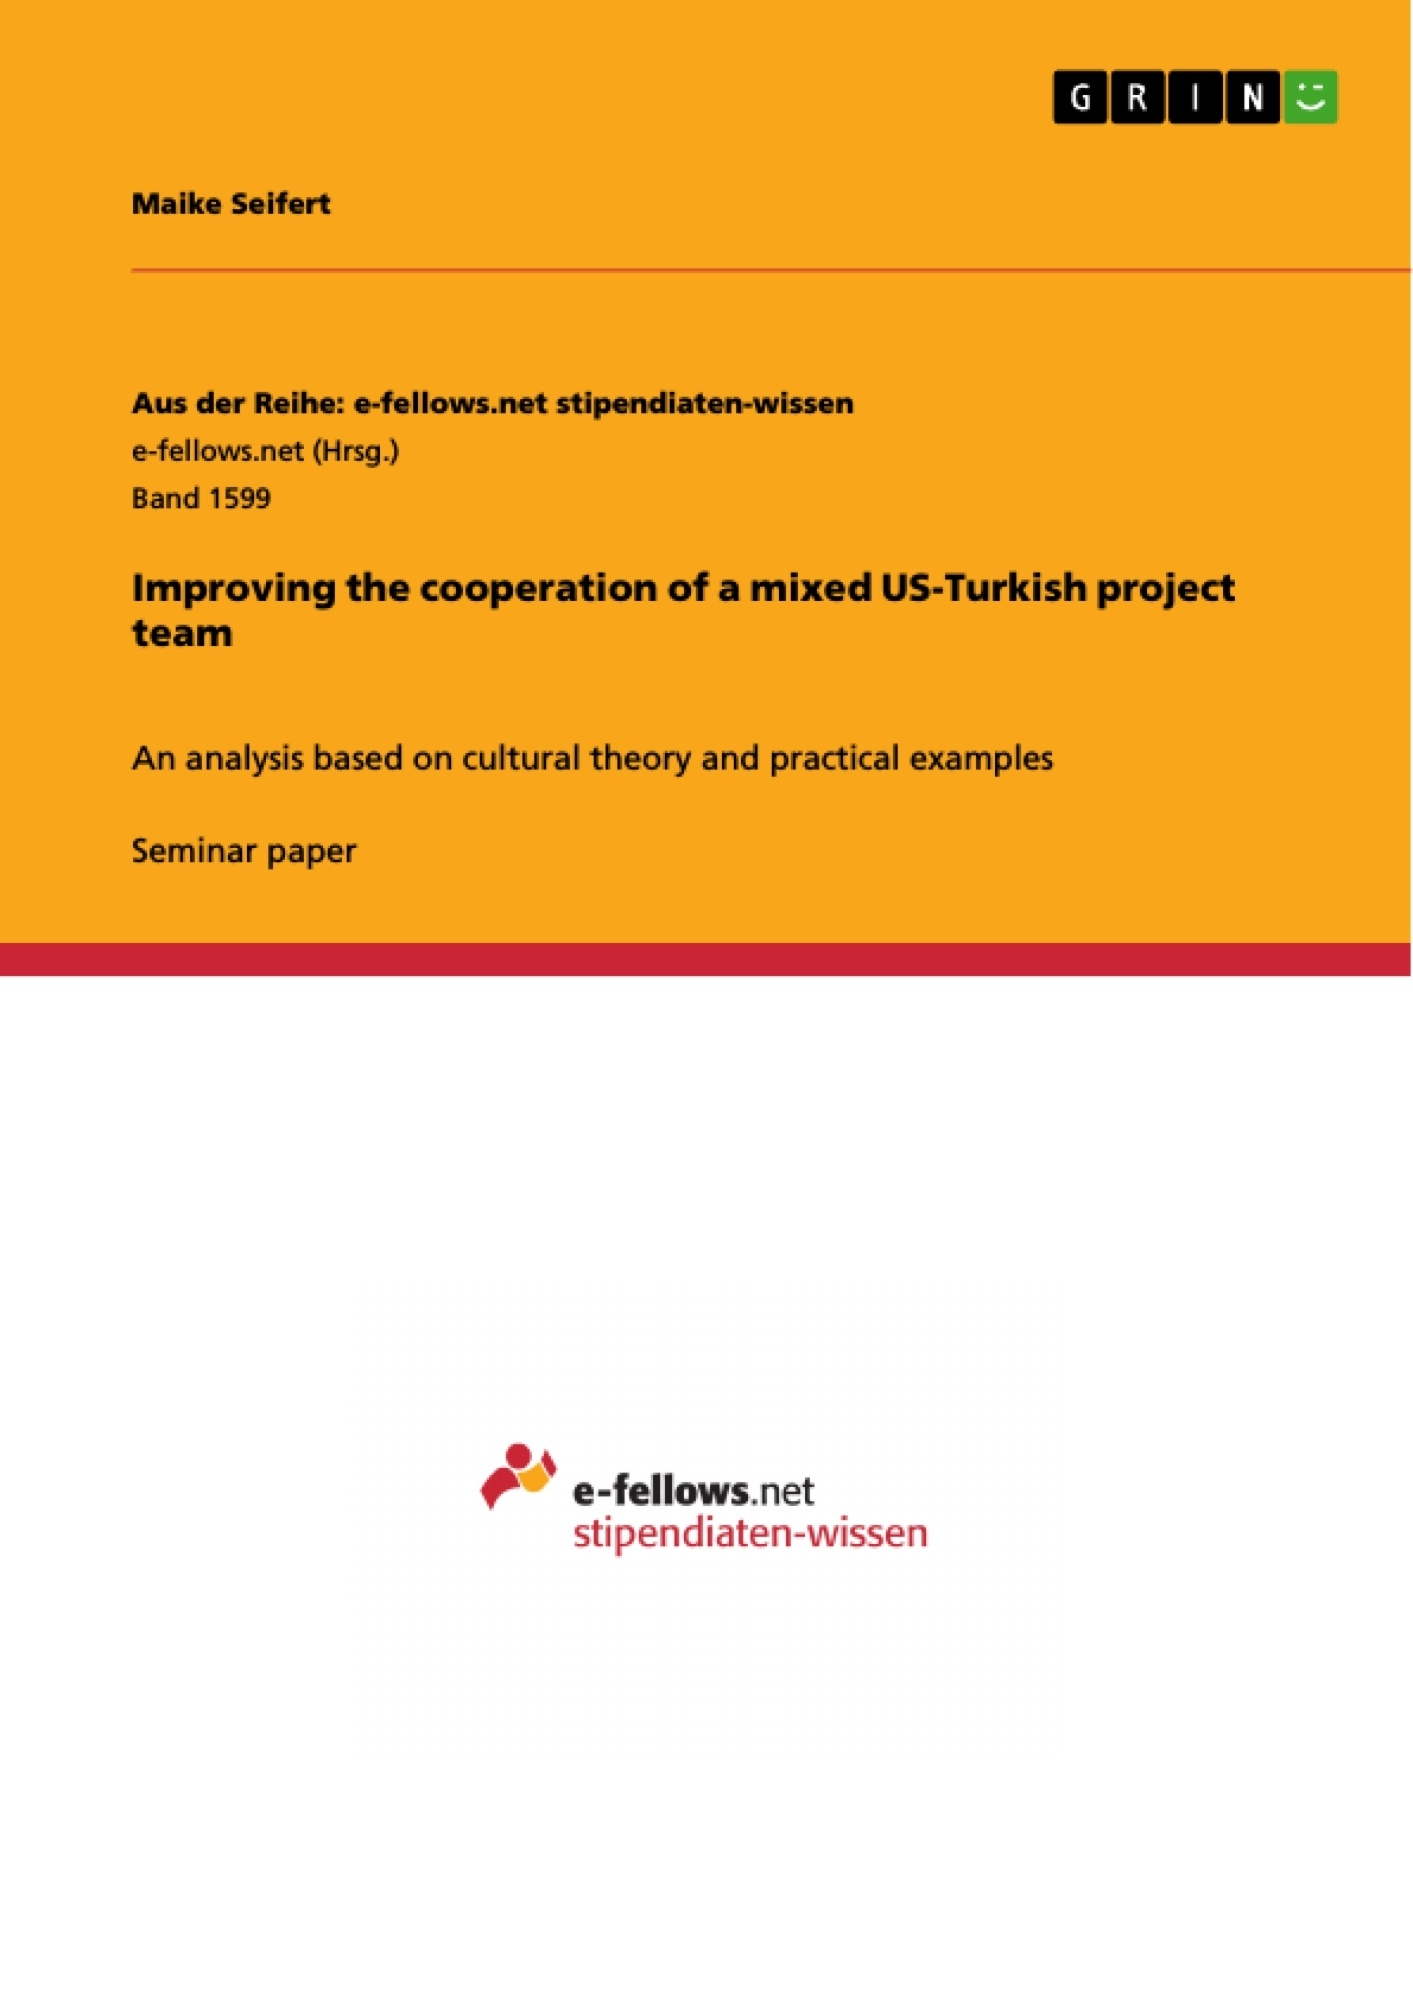 Title: Improving the cooperation of a mixed US-Turkish project team